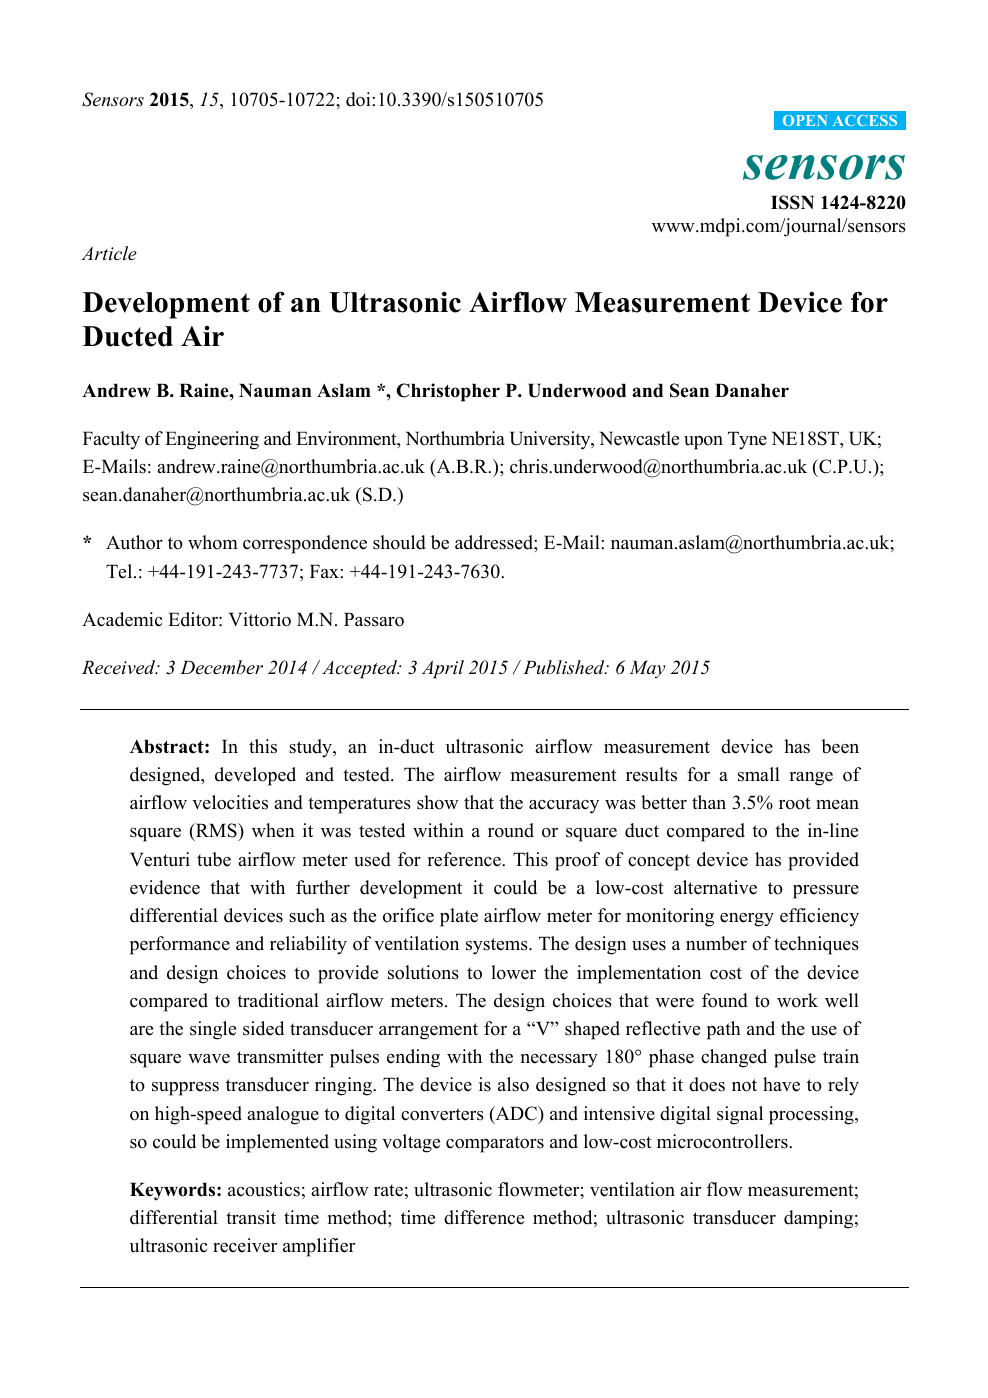 Development of an Ultrasonic Airflow Measurement Device for